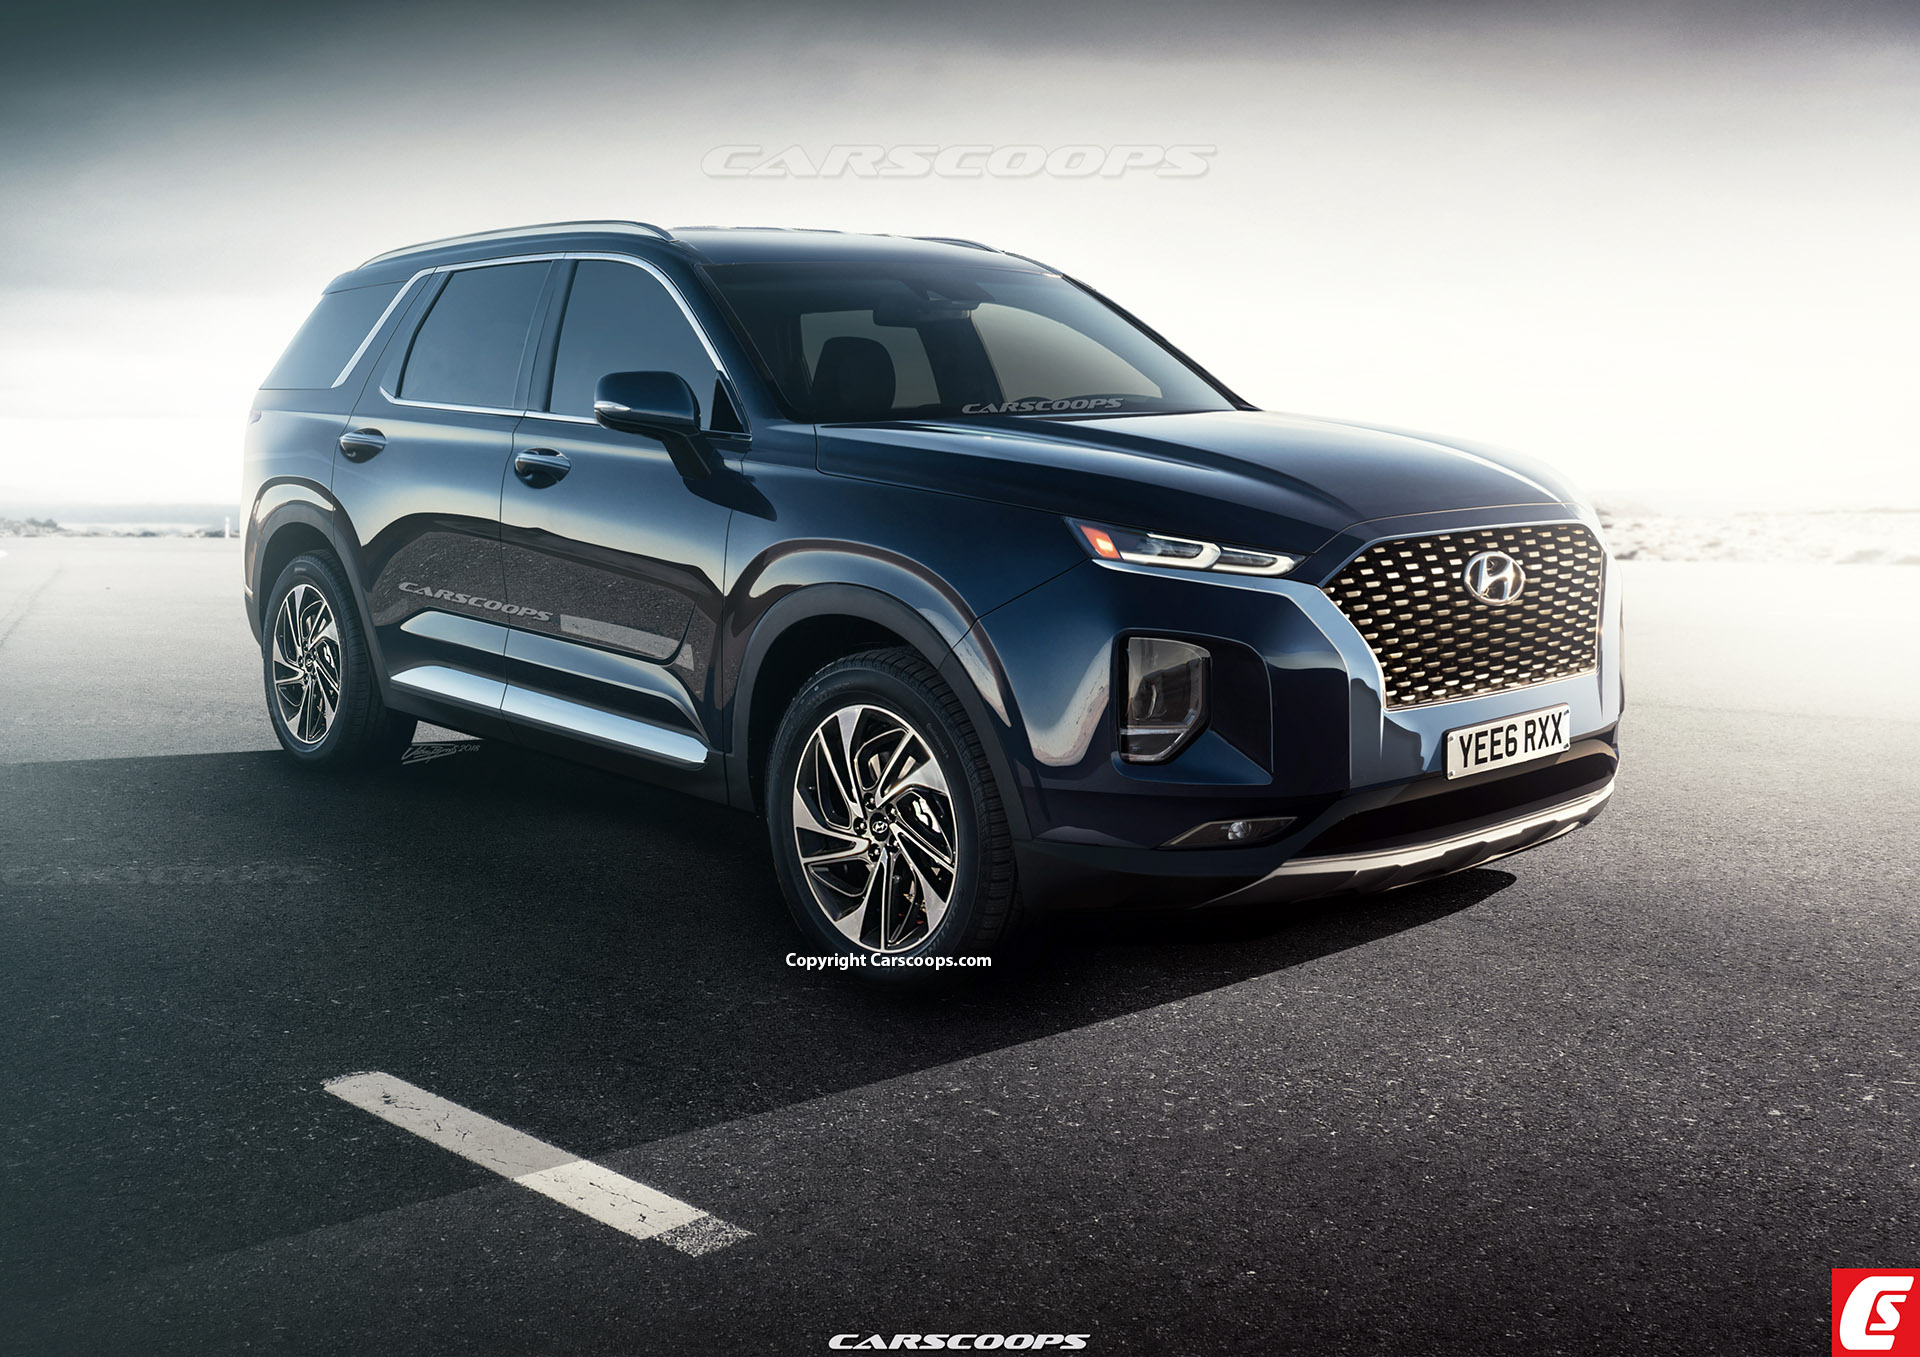 2020 Hyundai Palisade Everything We Know About The 3 Row